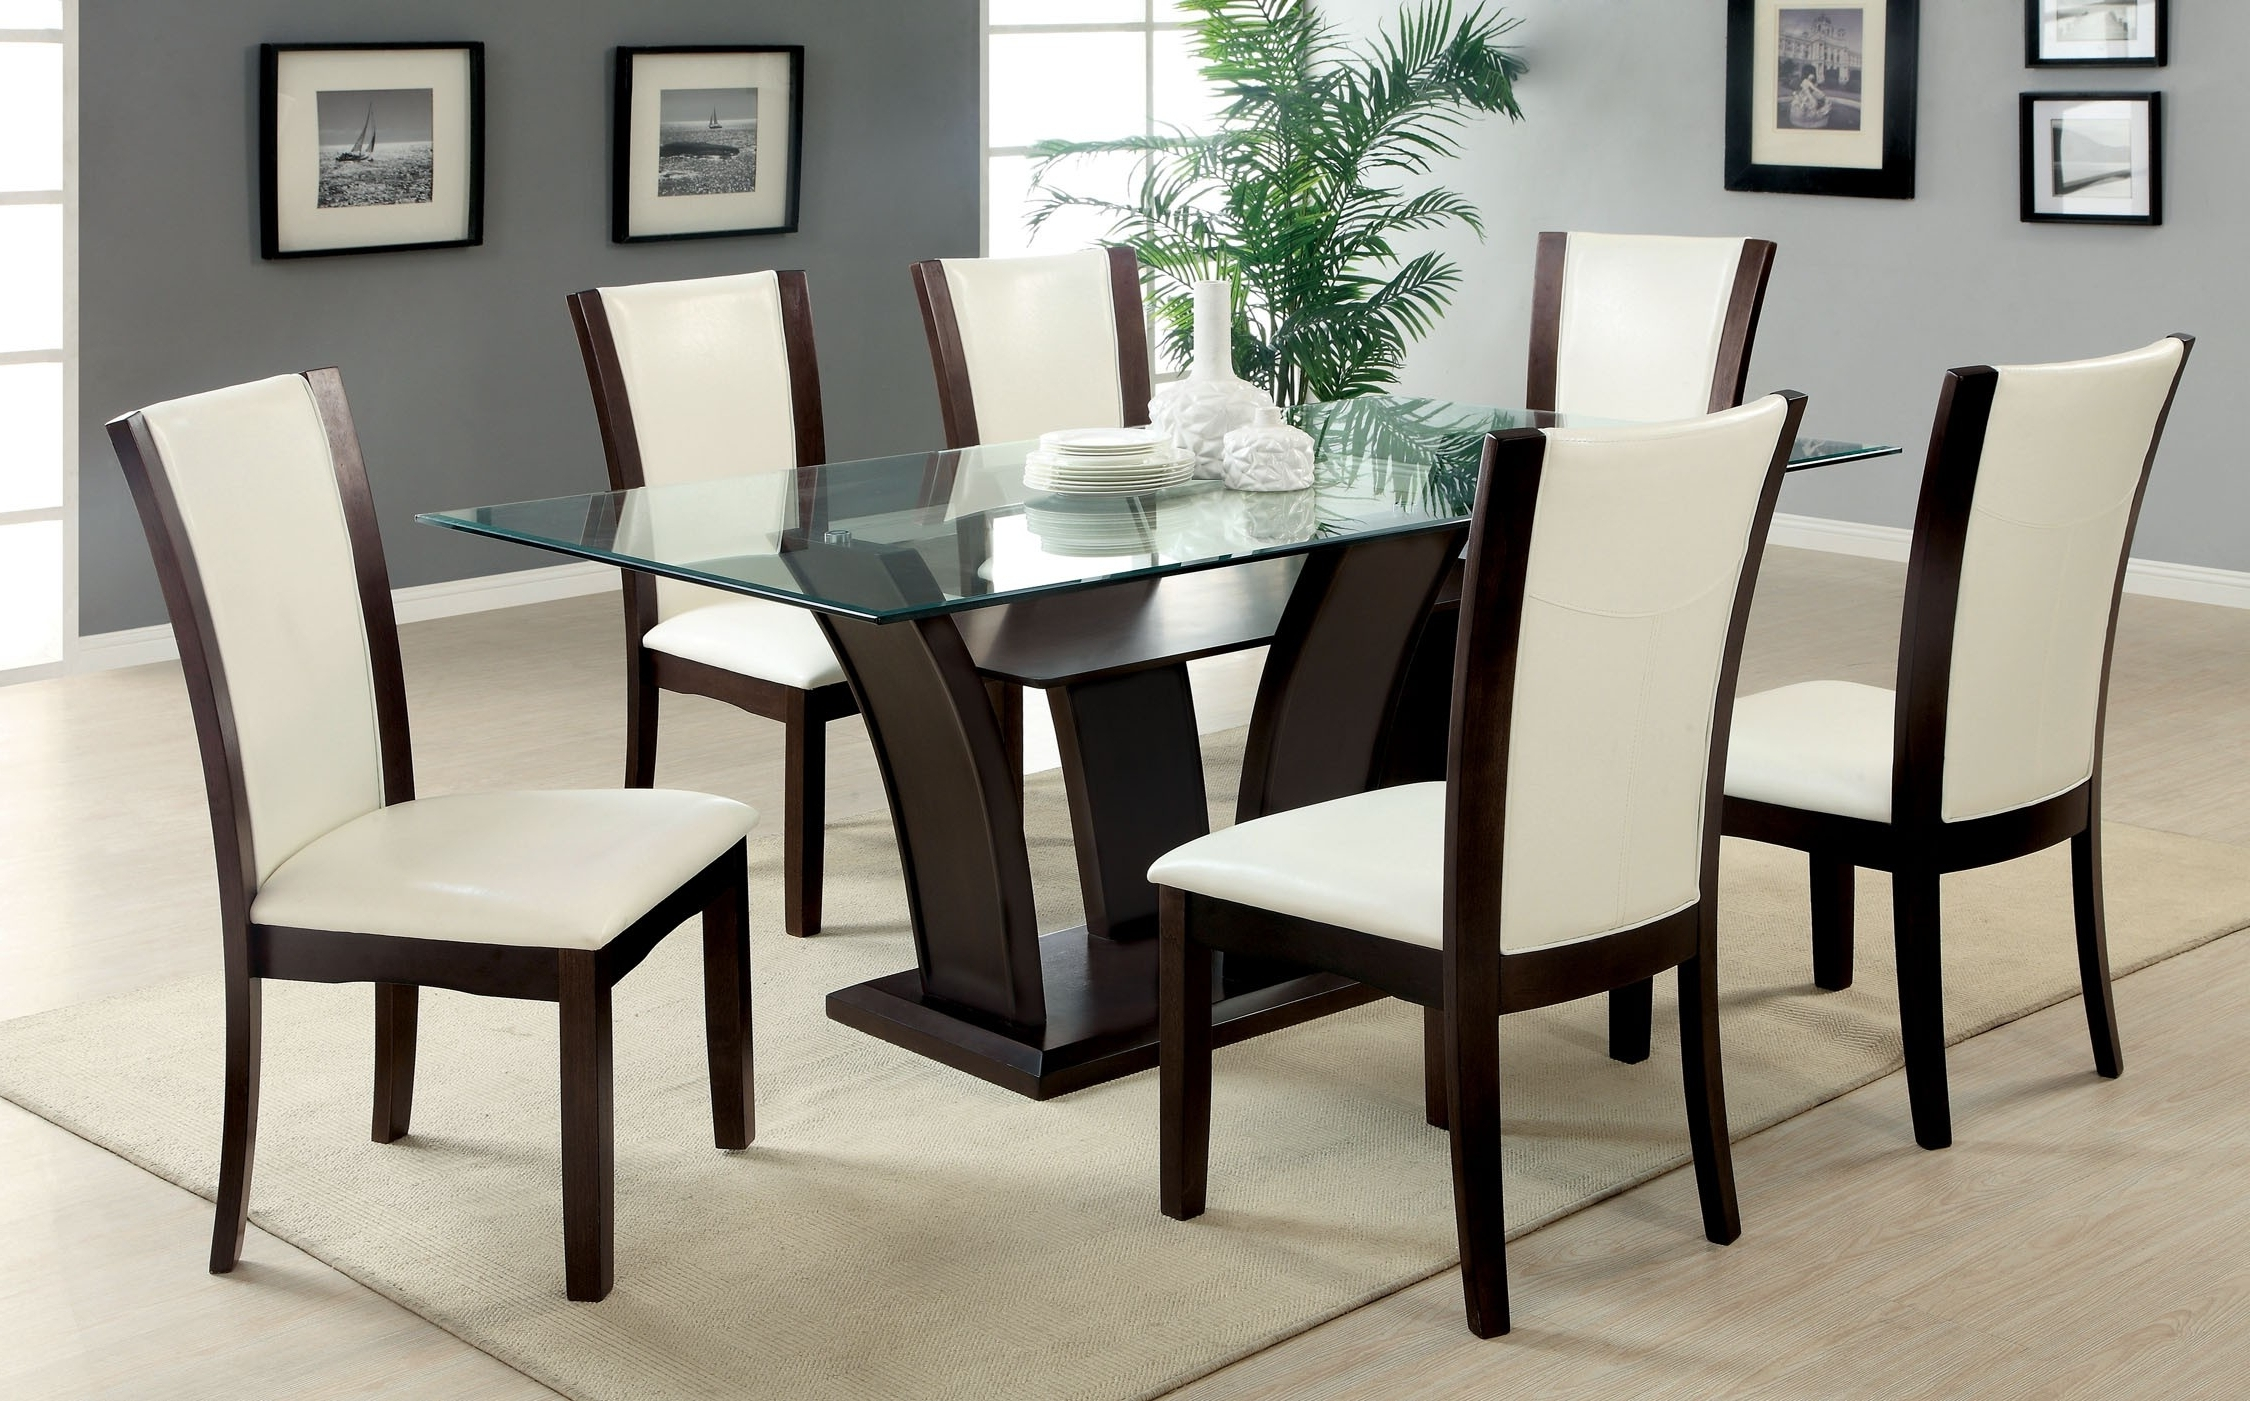 6 Seater Glass Dining Table Sets • Table Setting Ideas Pertaining To Most Current Glass 6 Seater Dining Tables (View 6 of 25)